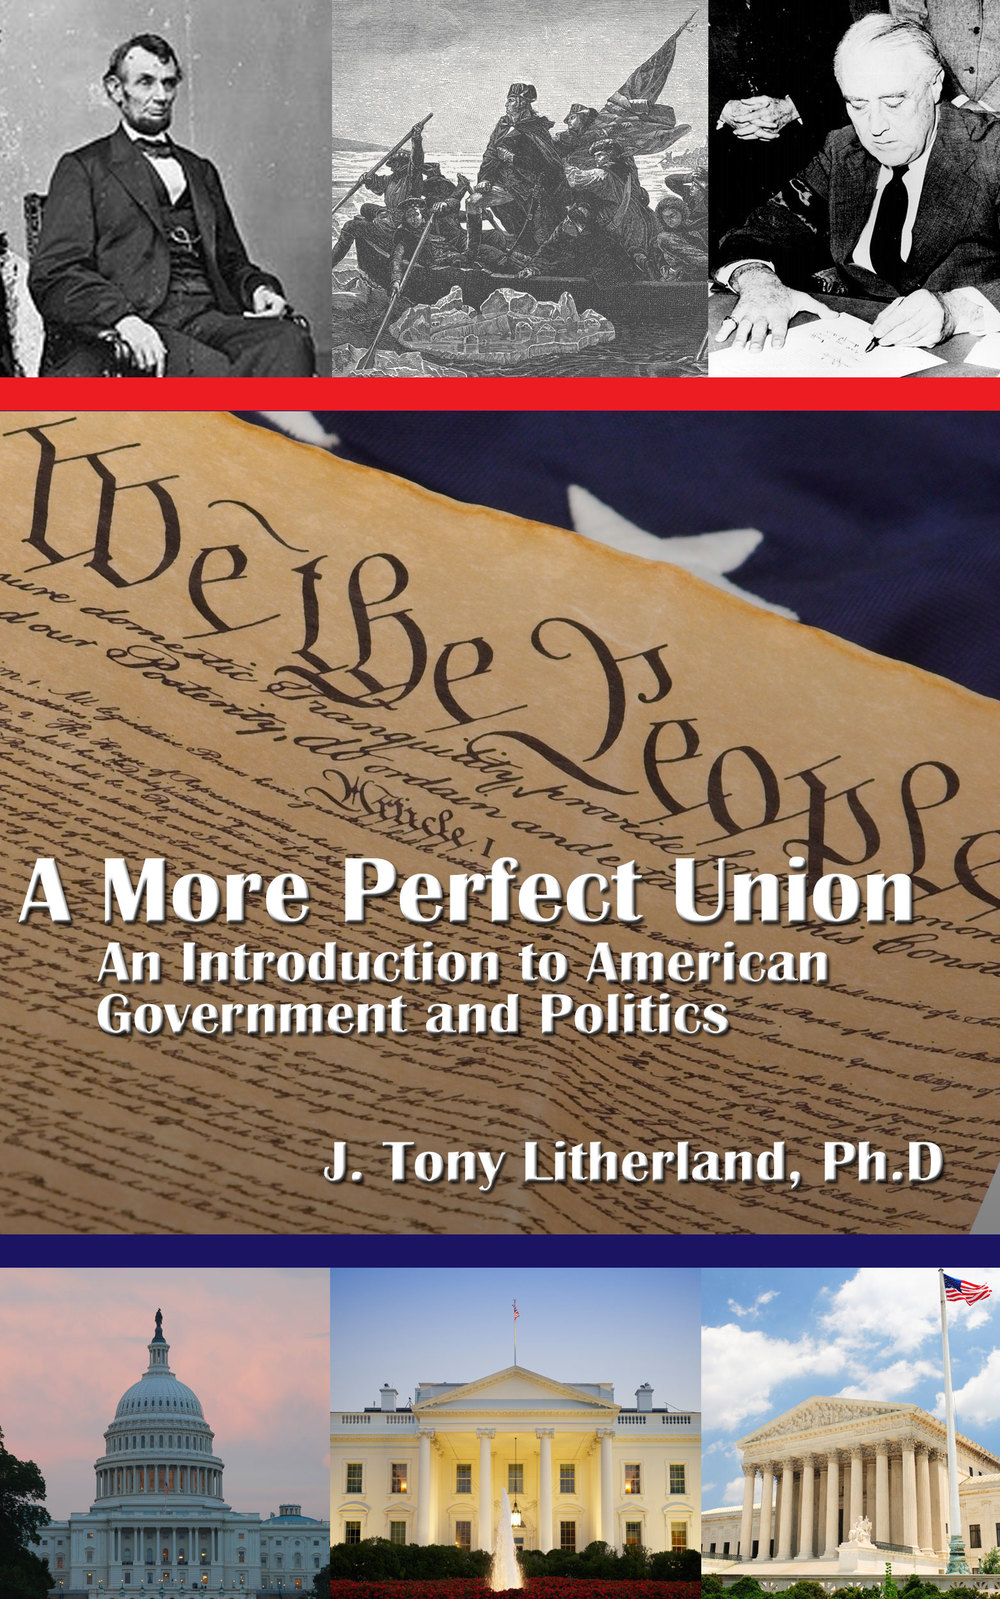 cover_more_perfect_union_9-4-14.jpg